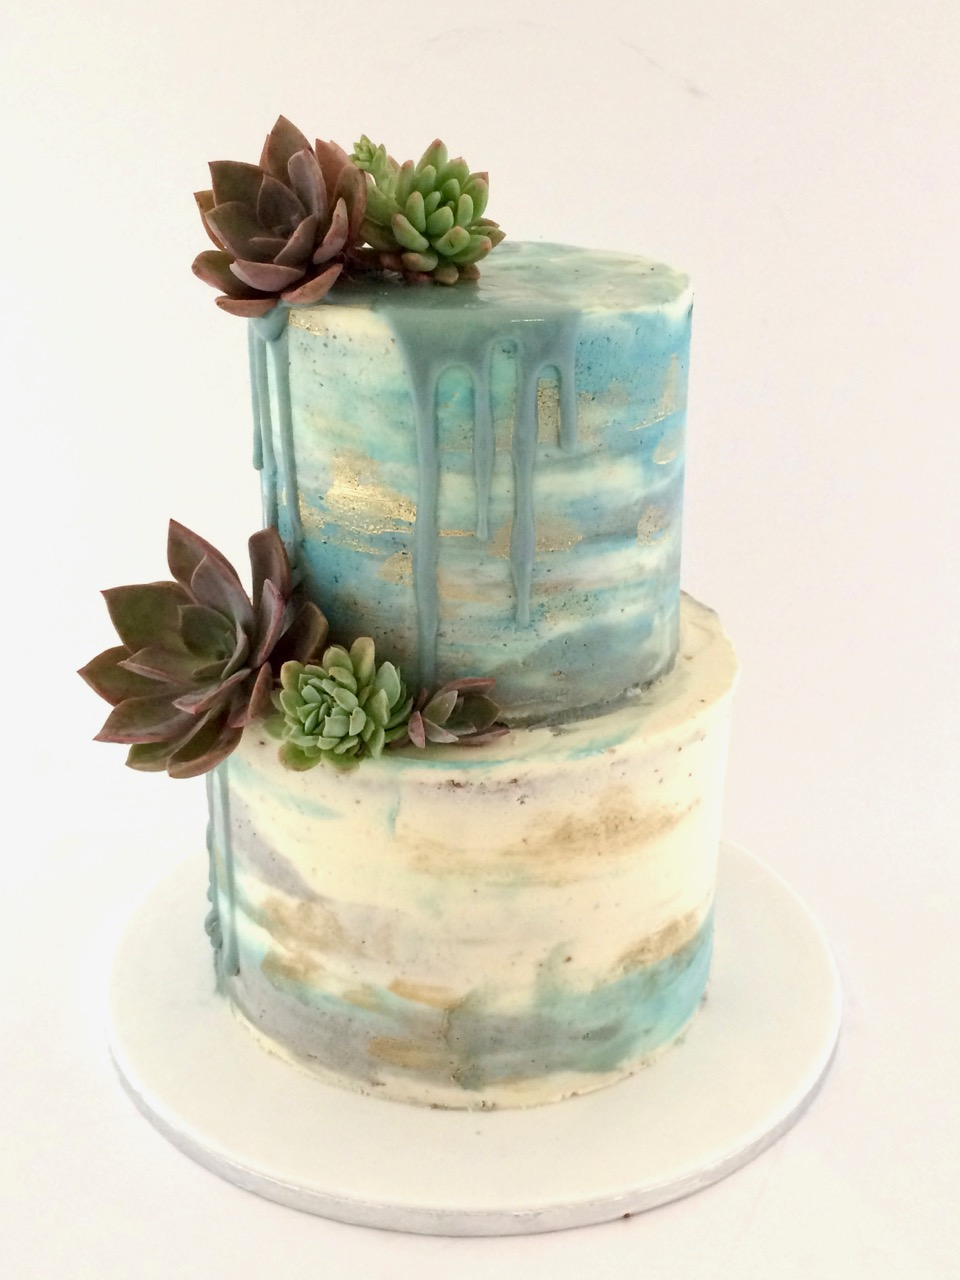 Rozannes Cakes Buttercream Cake With Succulents